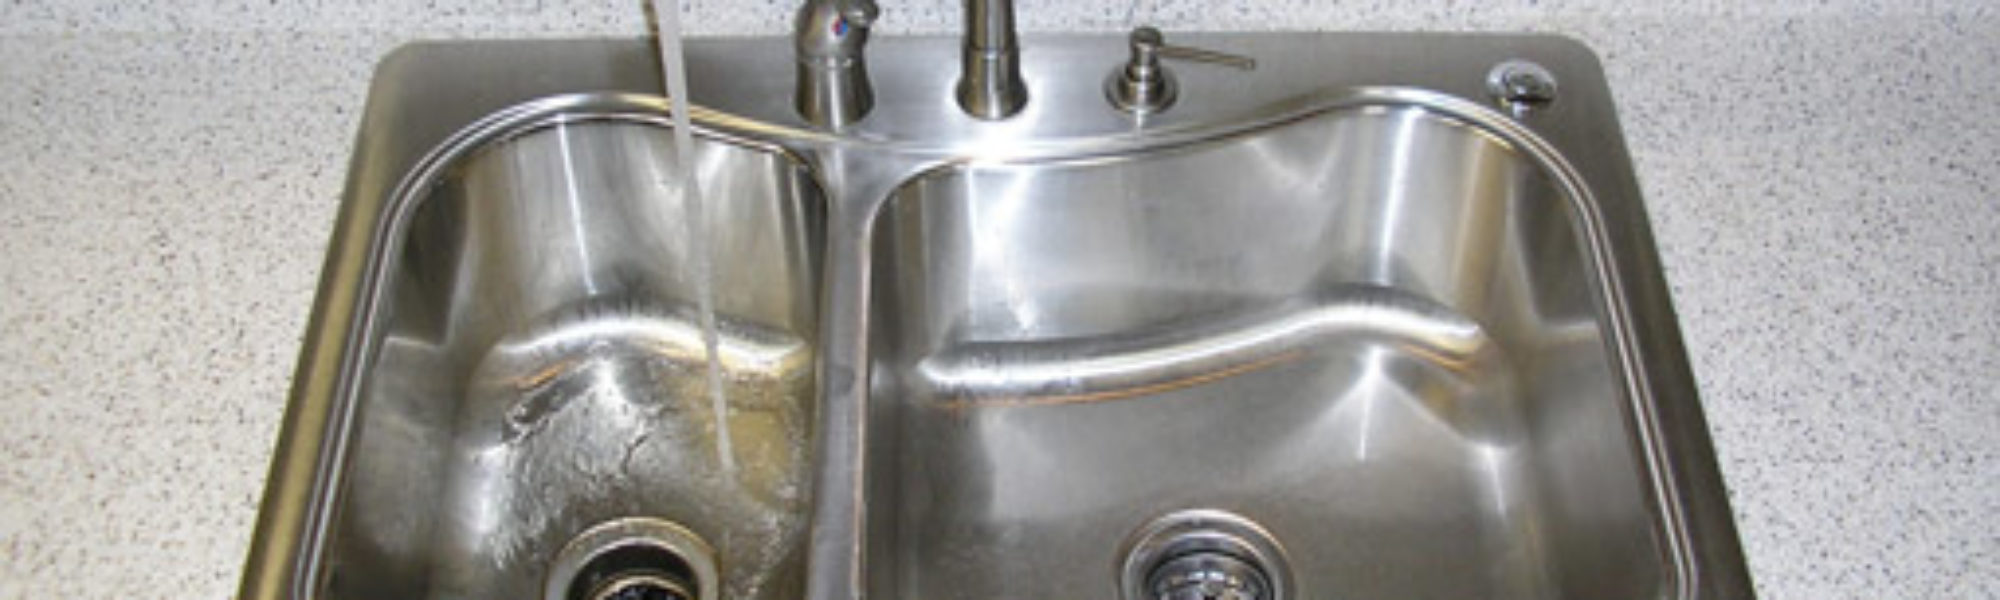 Kitchen Sinks, Faucets And Garbage Disposals